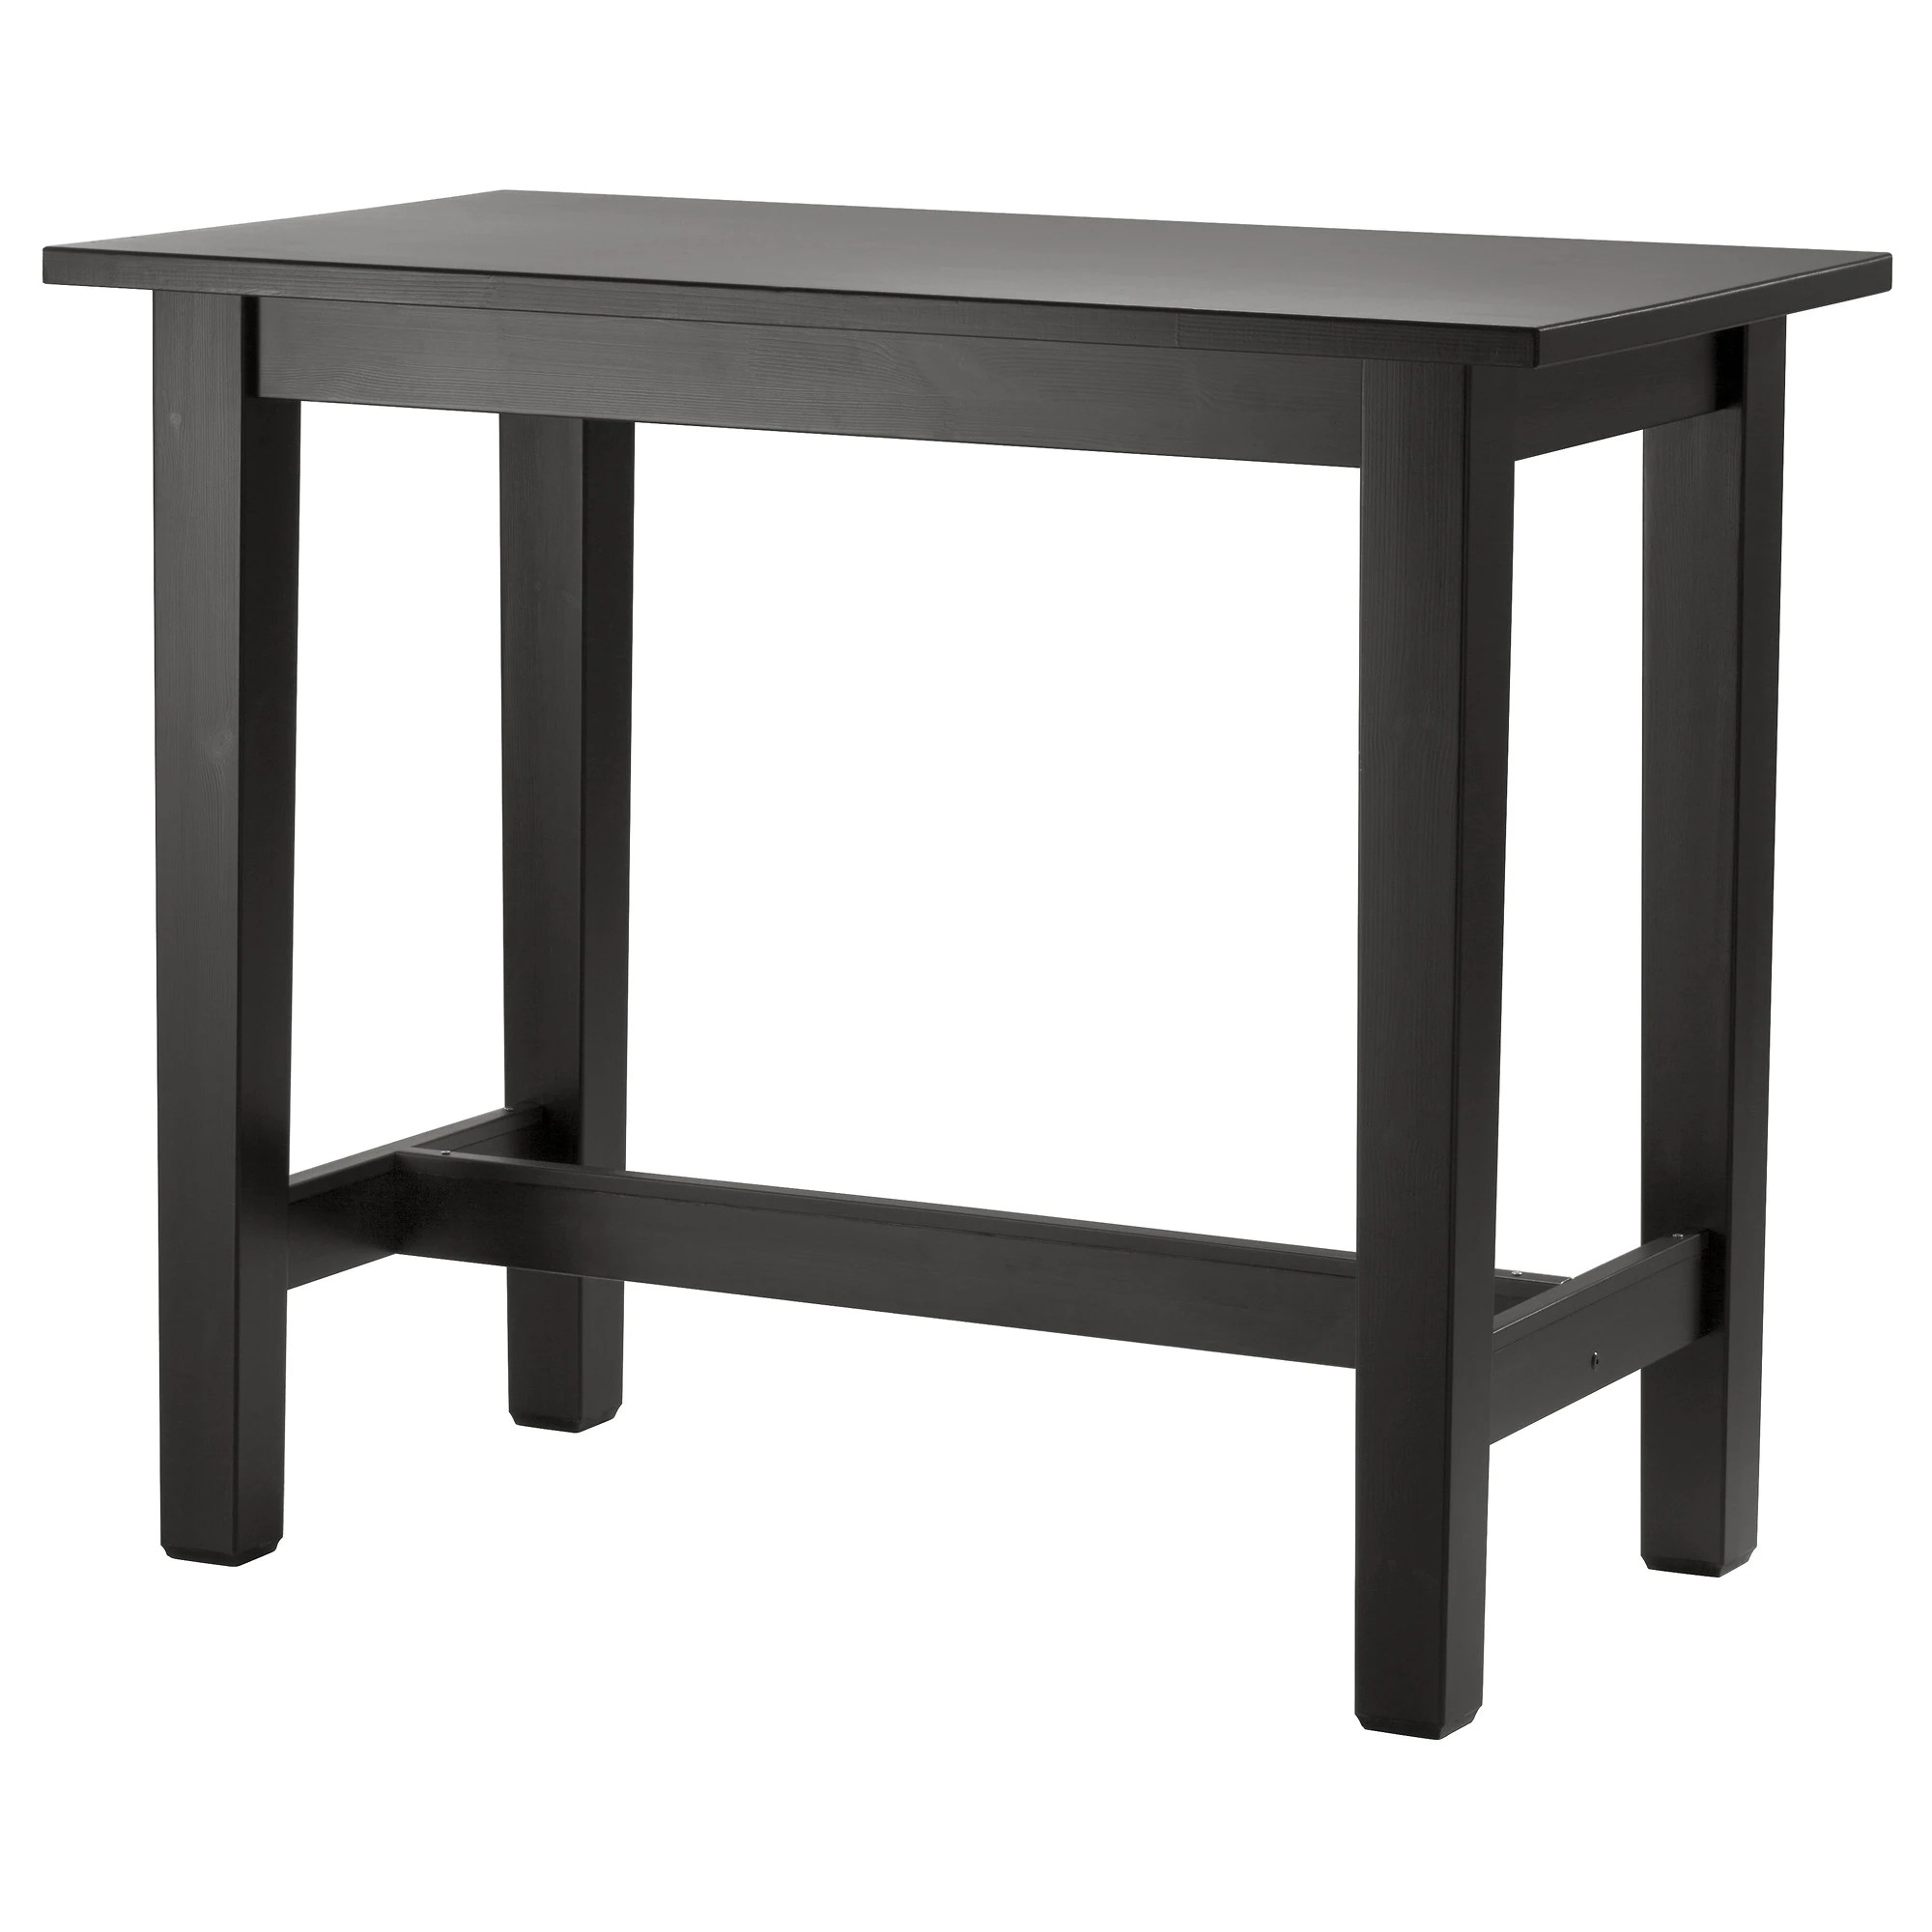 Ikea Breakfast Bar StornÄs Bar Table Brown Black